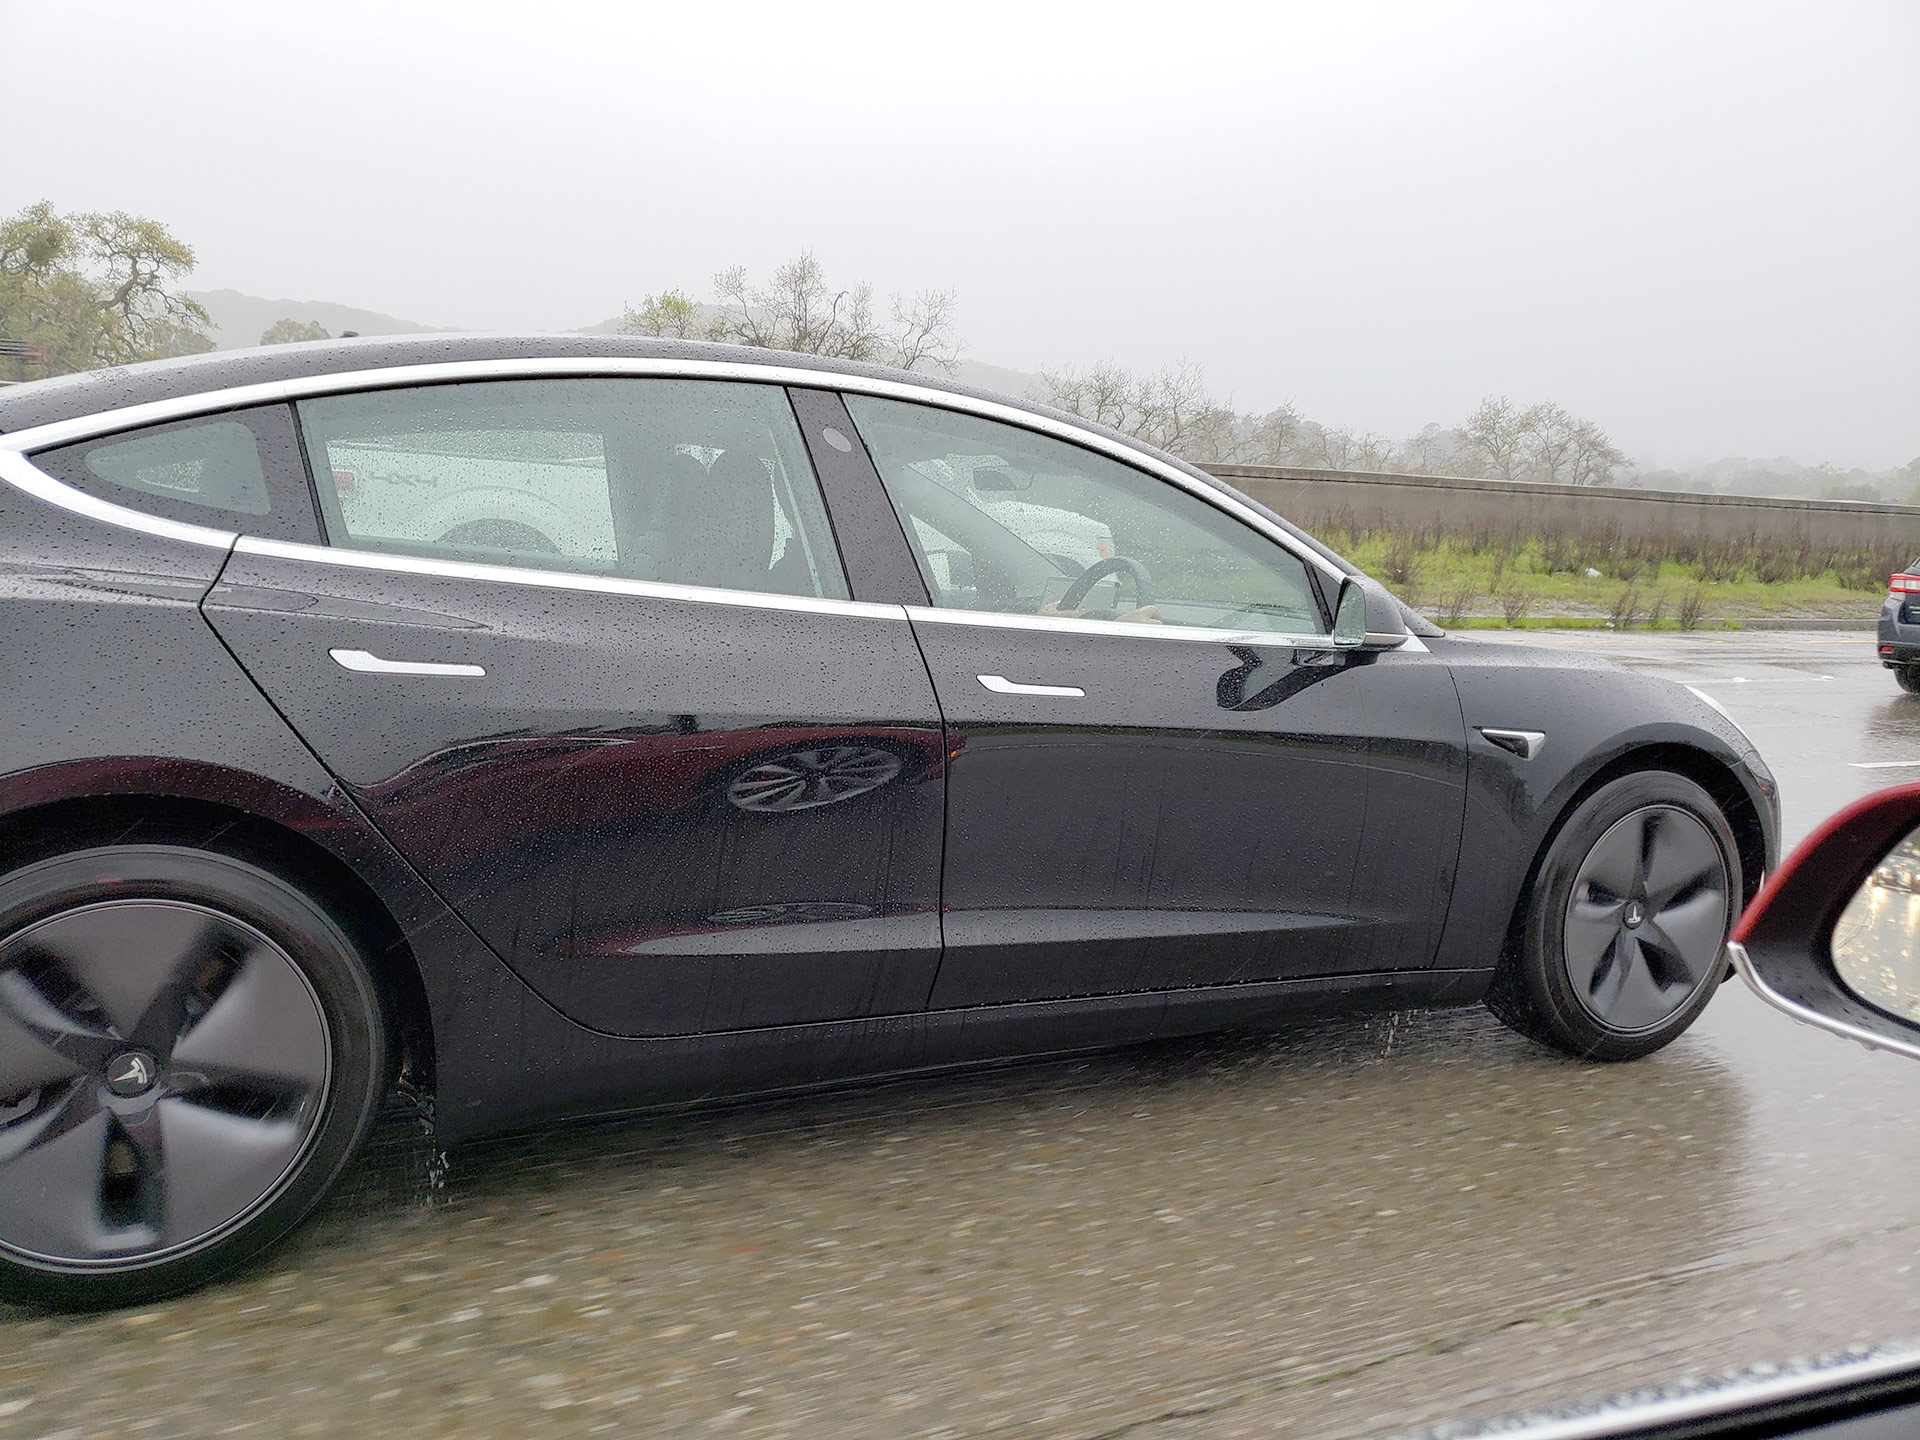 First Right-Hand-Drive Tesla Model 3 spotted - Dual Motor, Aero Wheels, Black Color